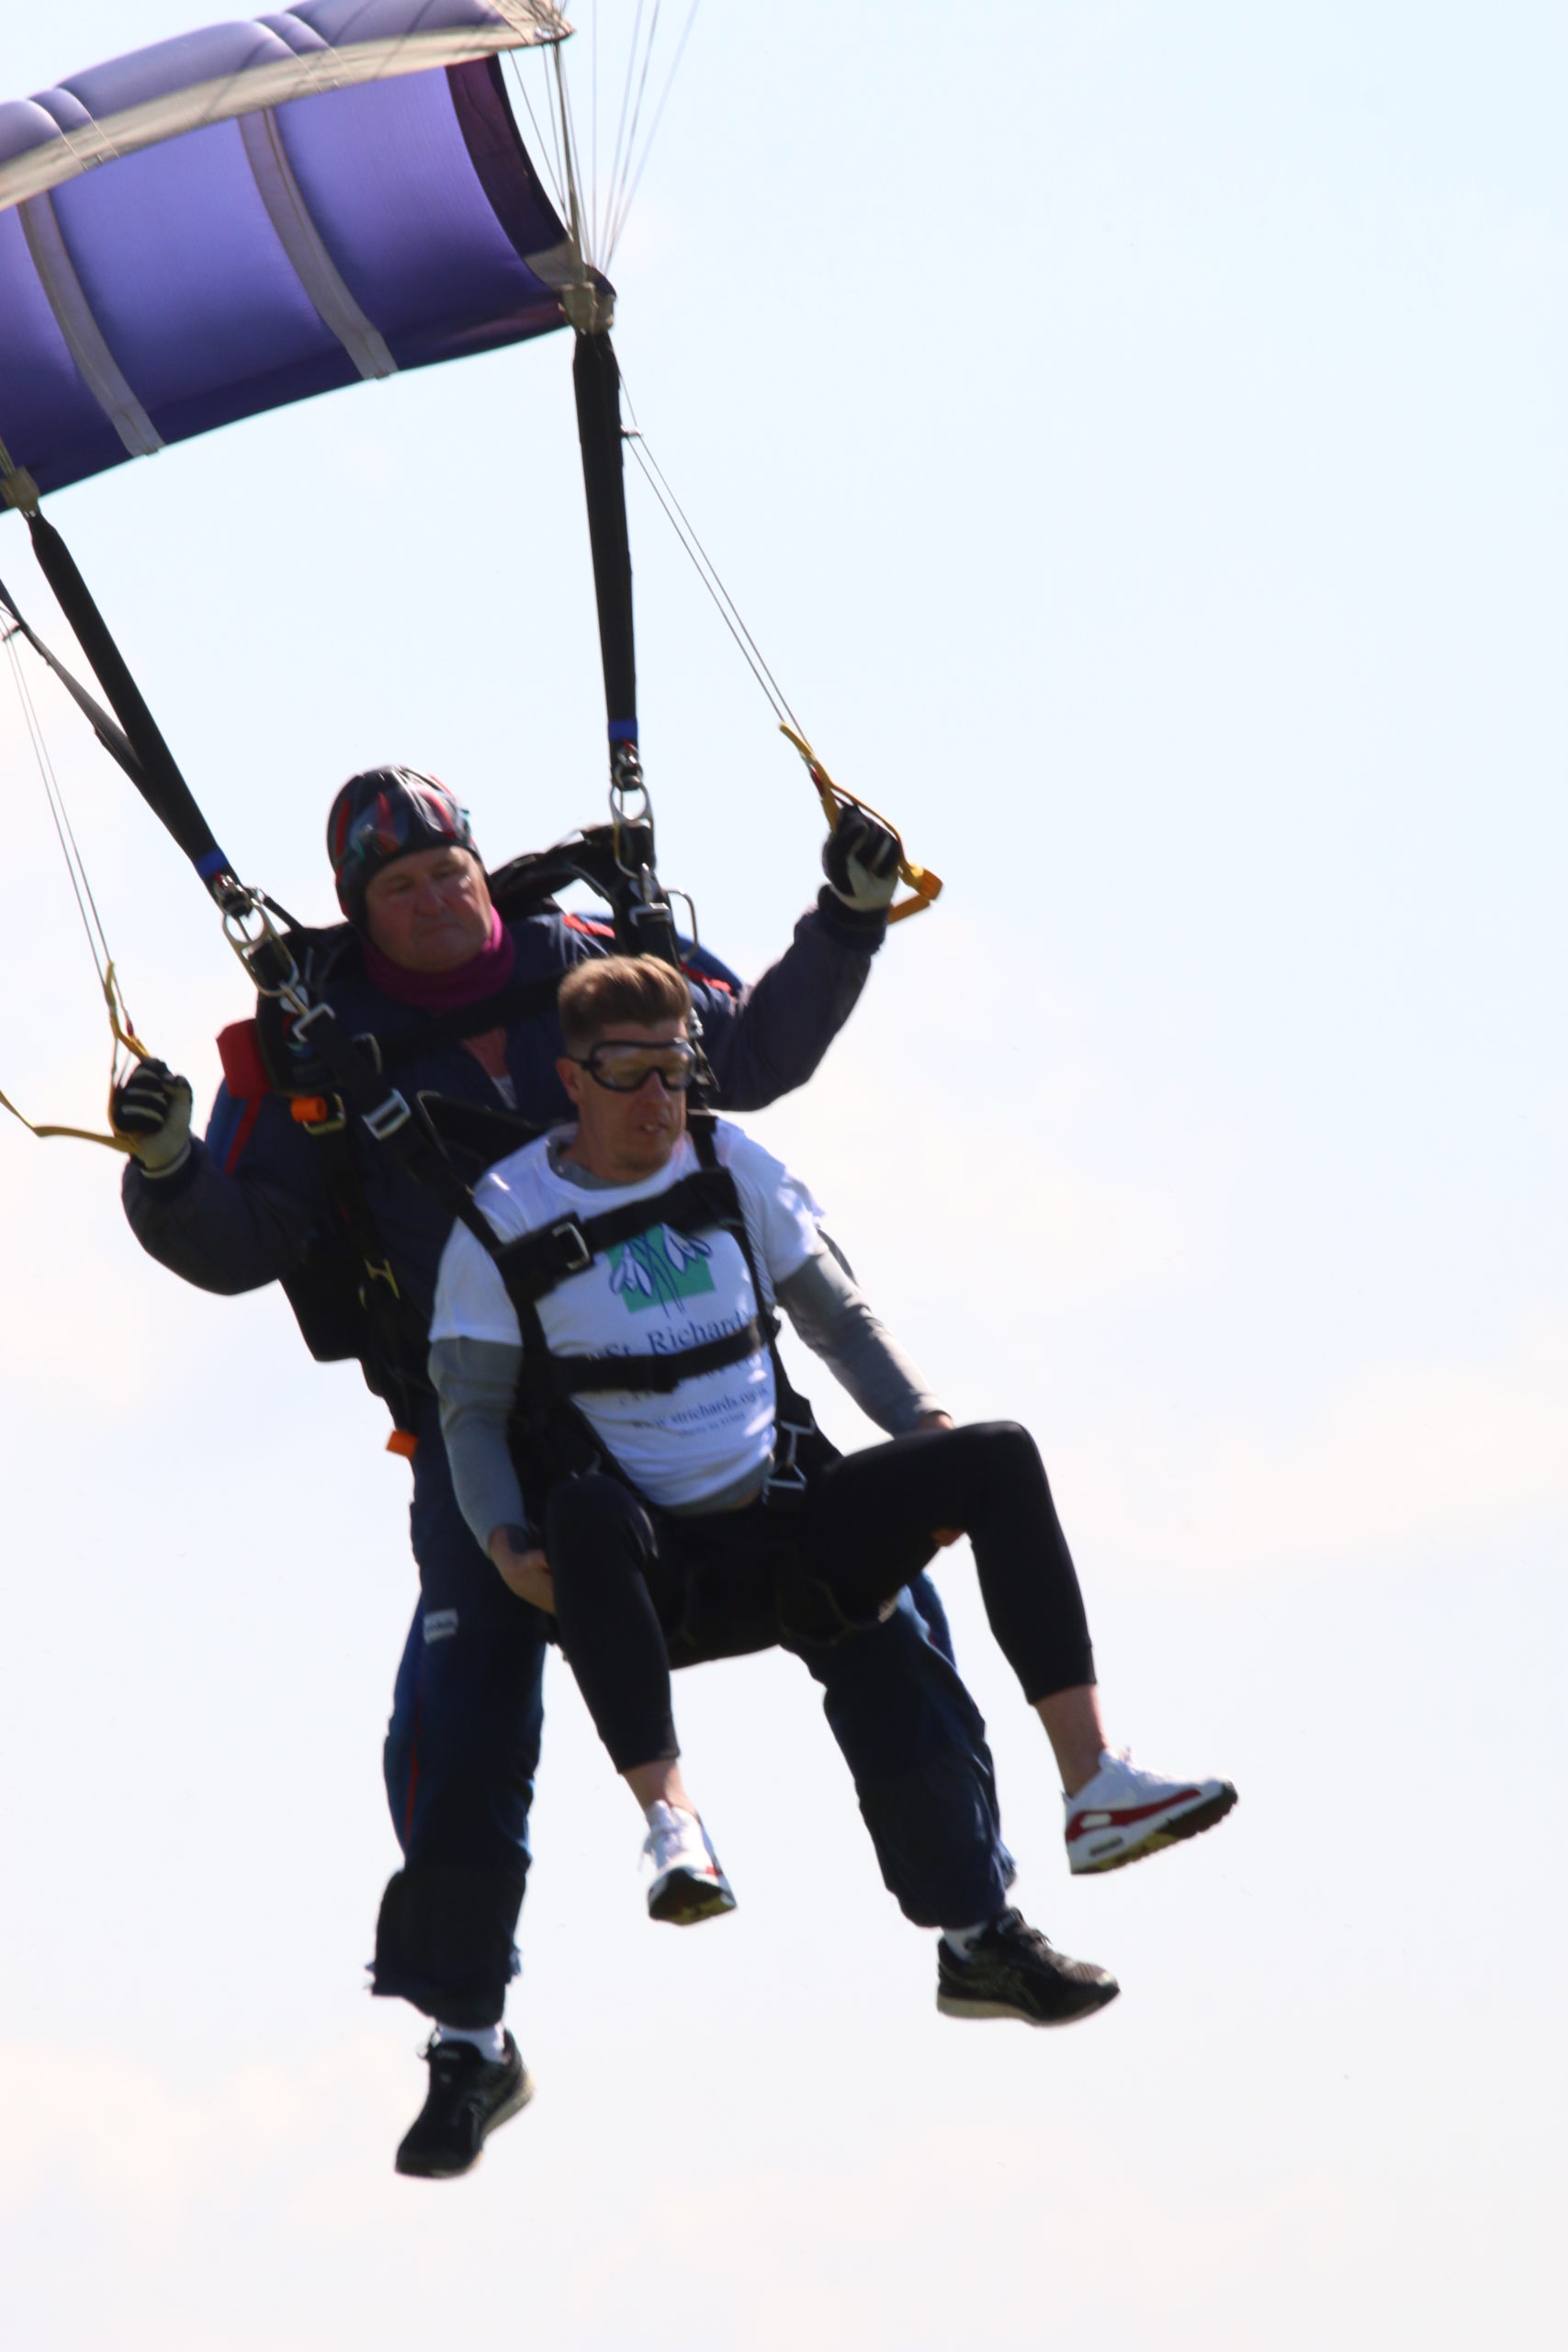 Fundraising Roundup VI: Skydiver overcomes fear of flying to raise hospice funds